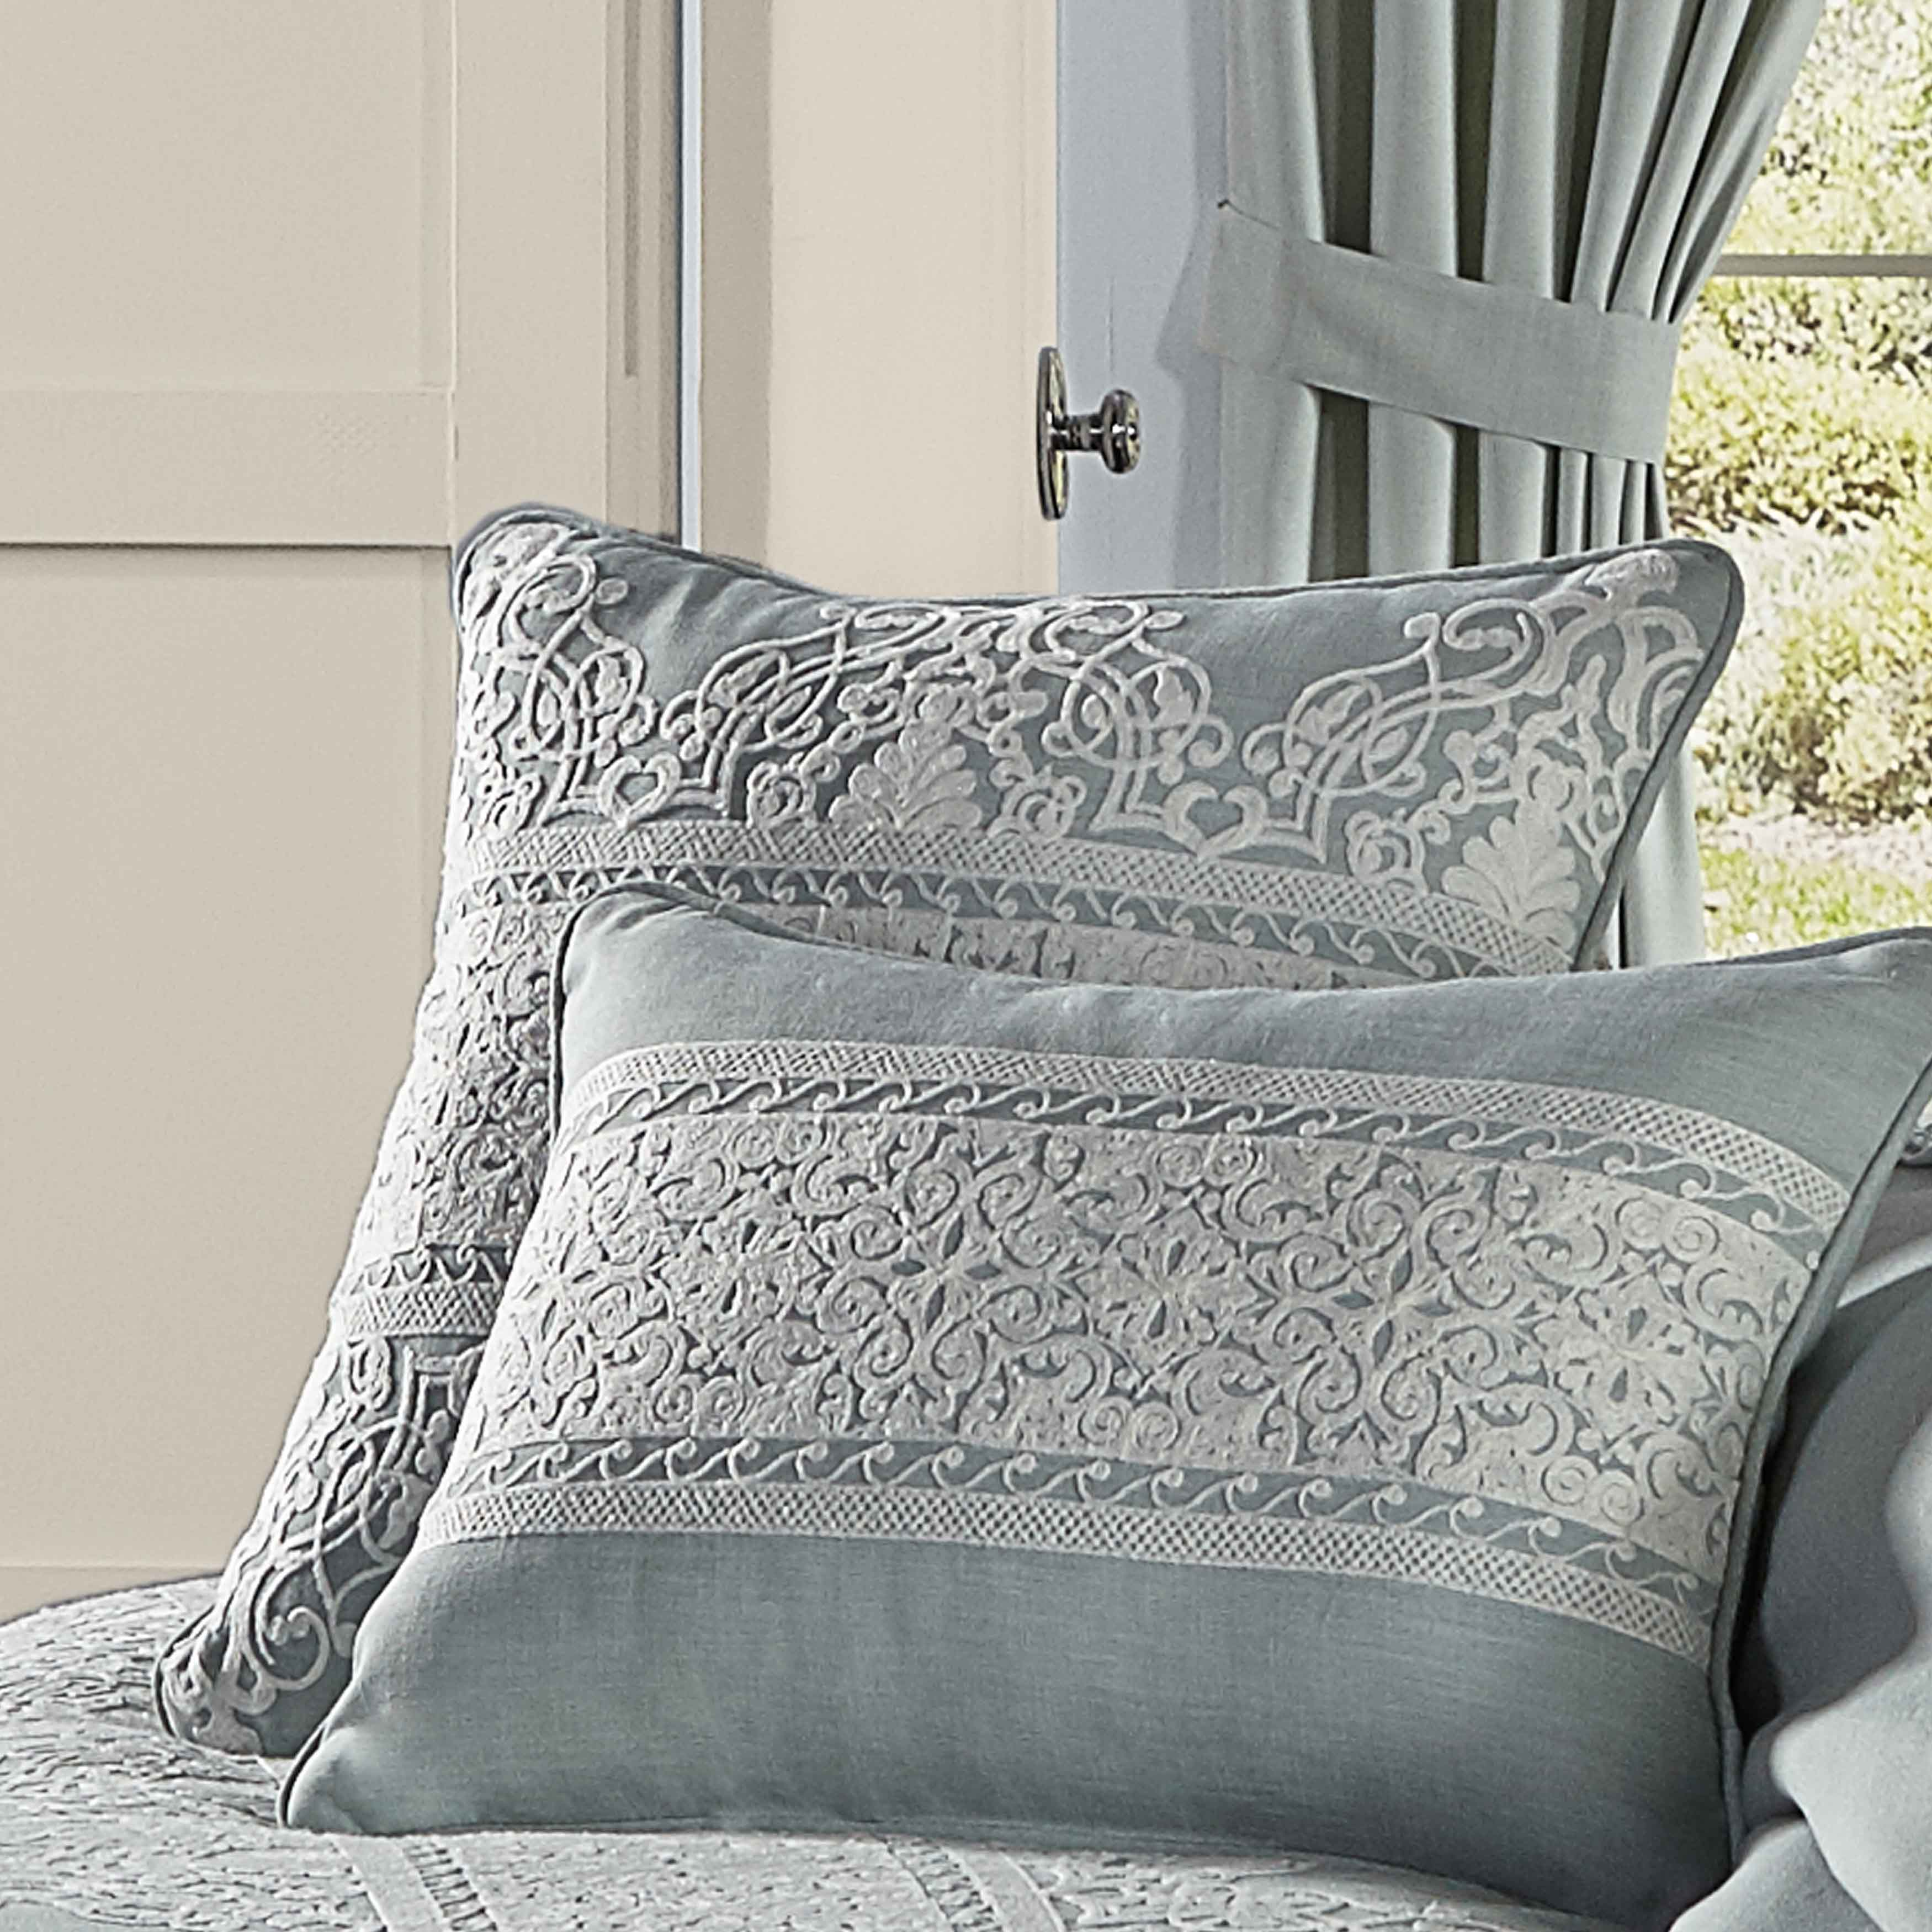 "Patricia SPA Decorative Throw Pillow 20"" x 20"" [Luxury comforter Sets] [by Latest Bedding]"